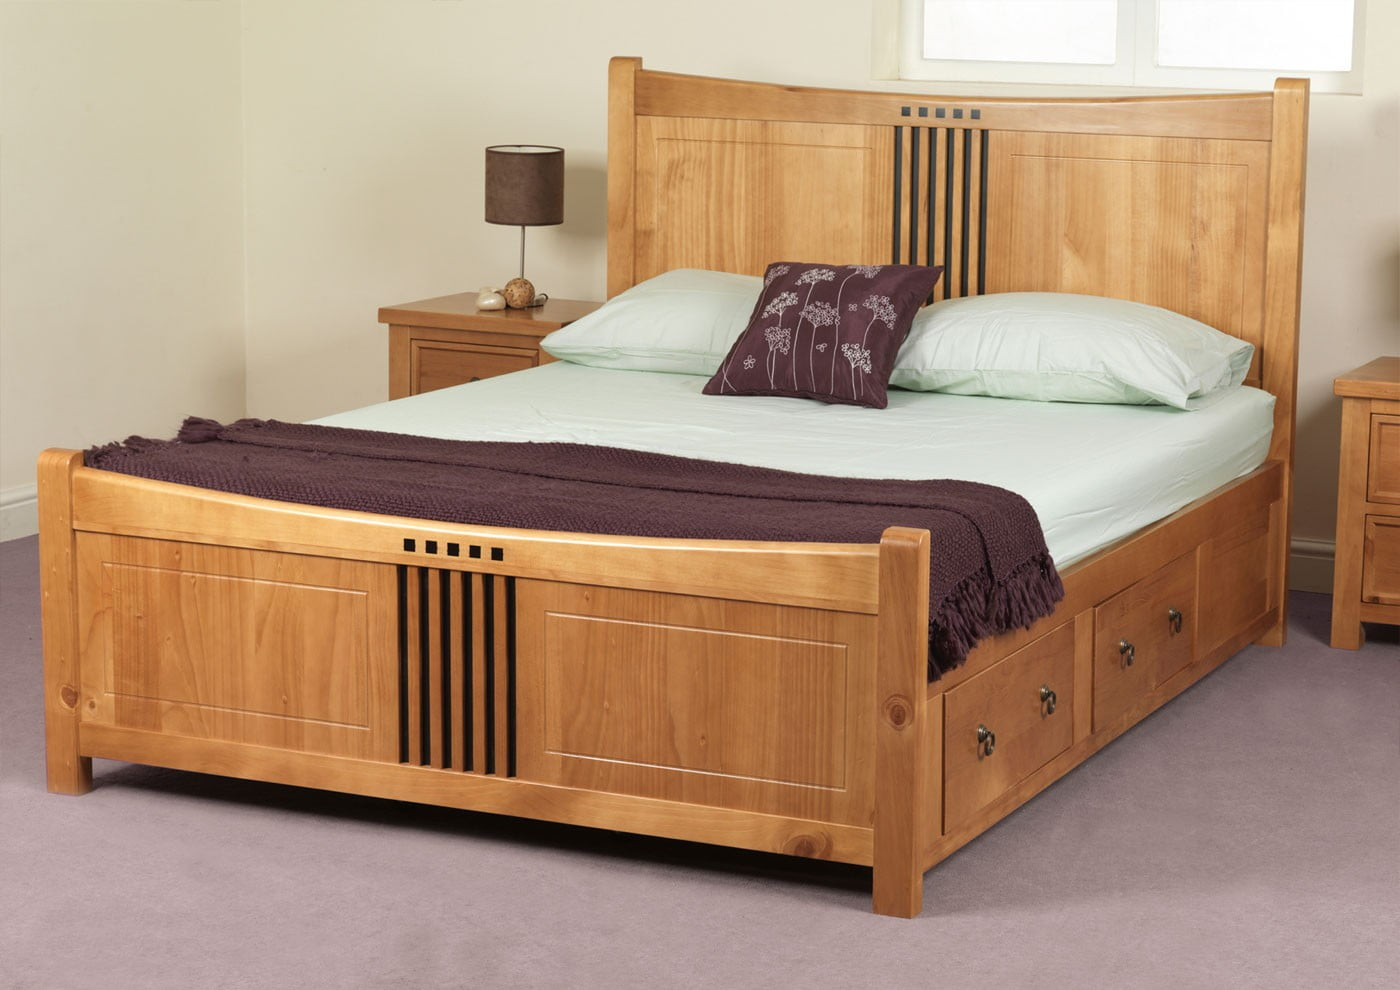 Bedroom Furniture Exhibition